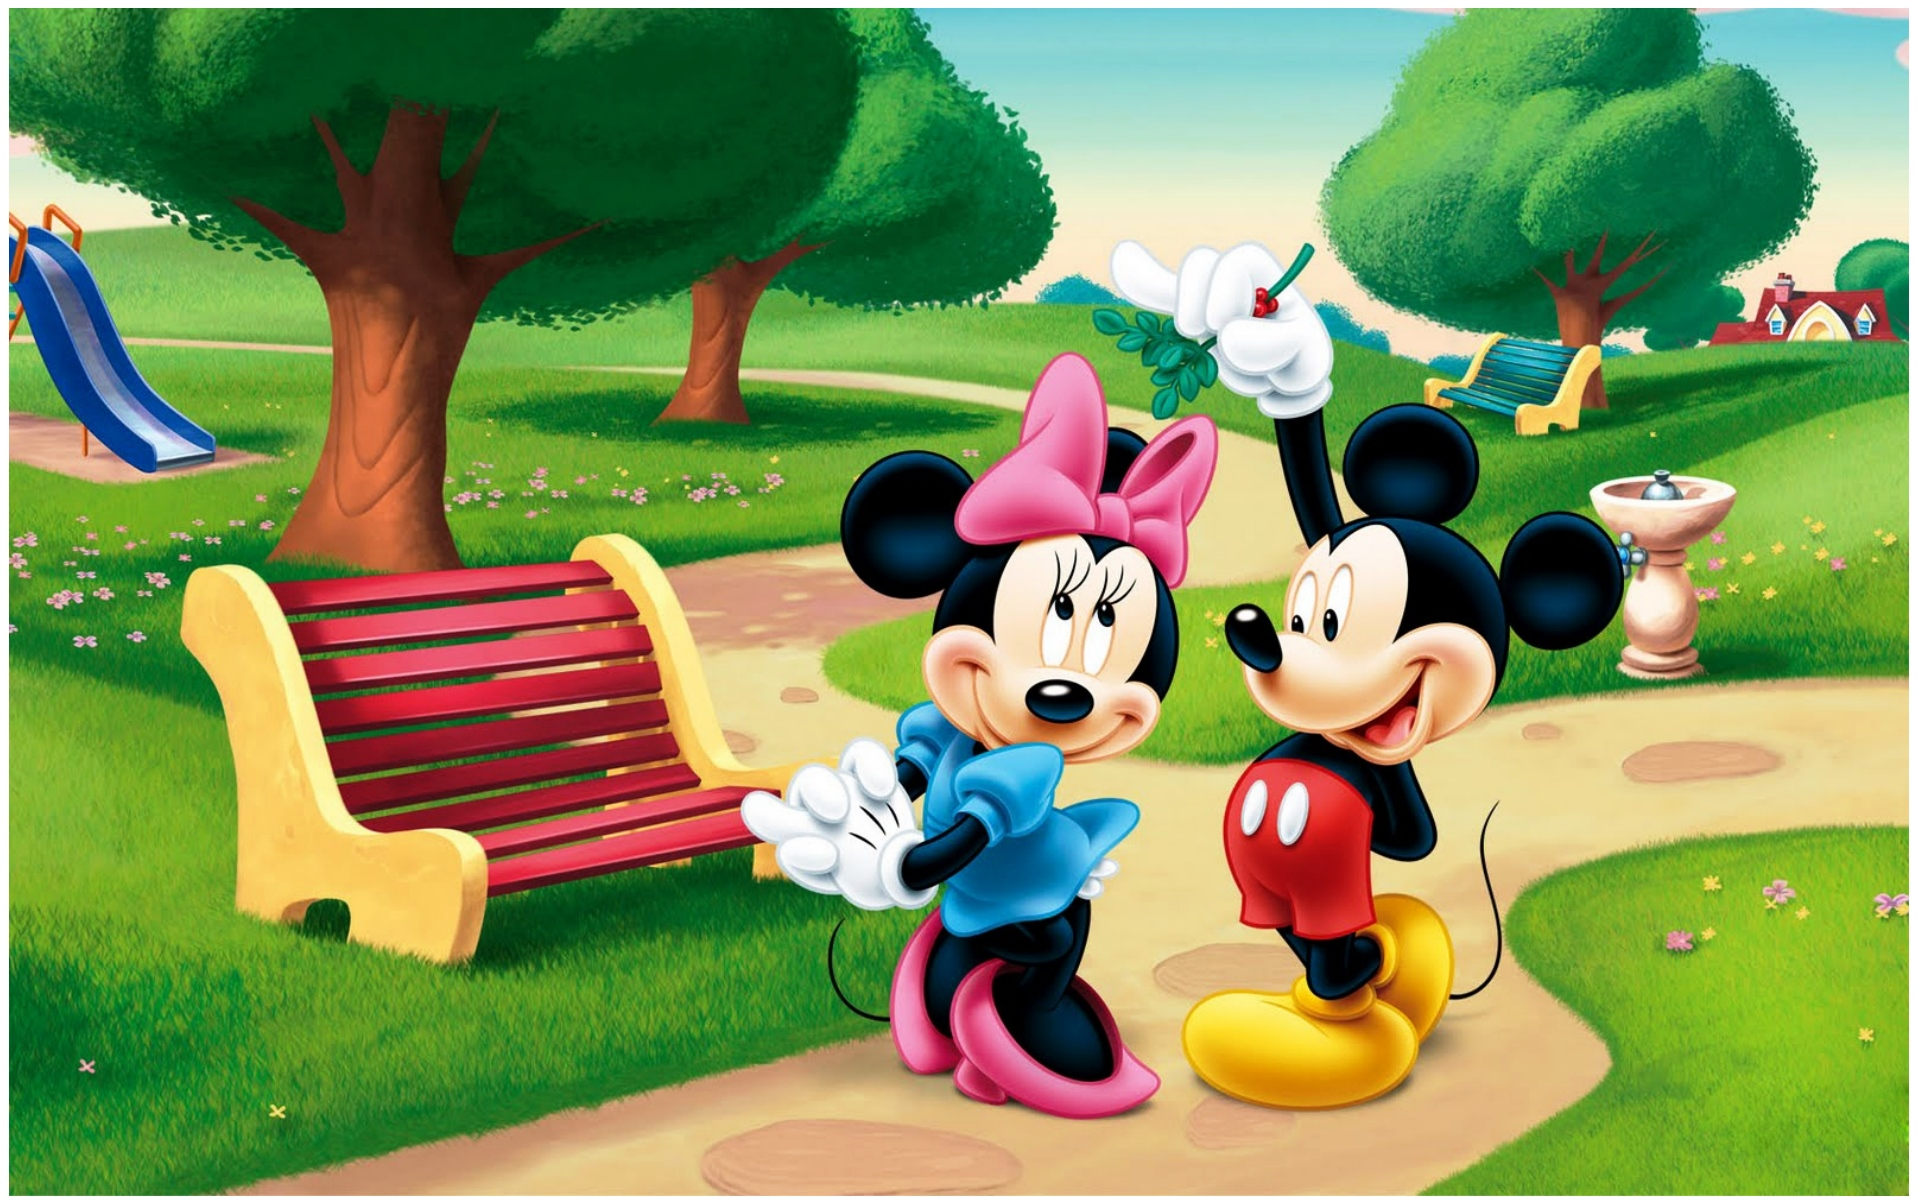 cartoon Love Full Hd Wallpaper : Mickey Mouse cartoons HD Wallpapers Download HD Walls